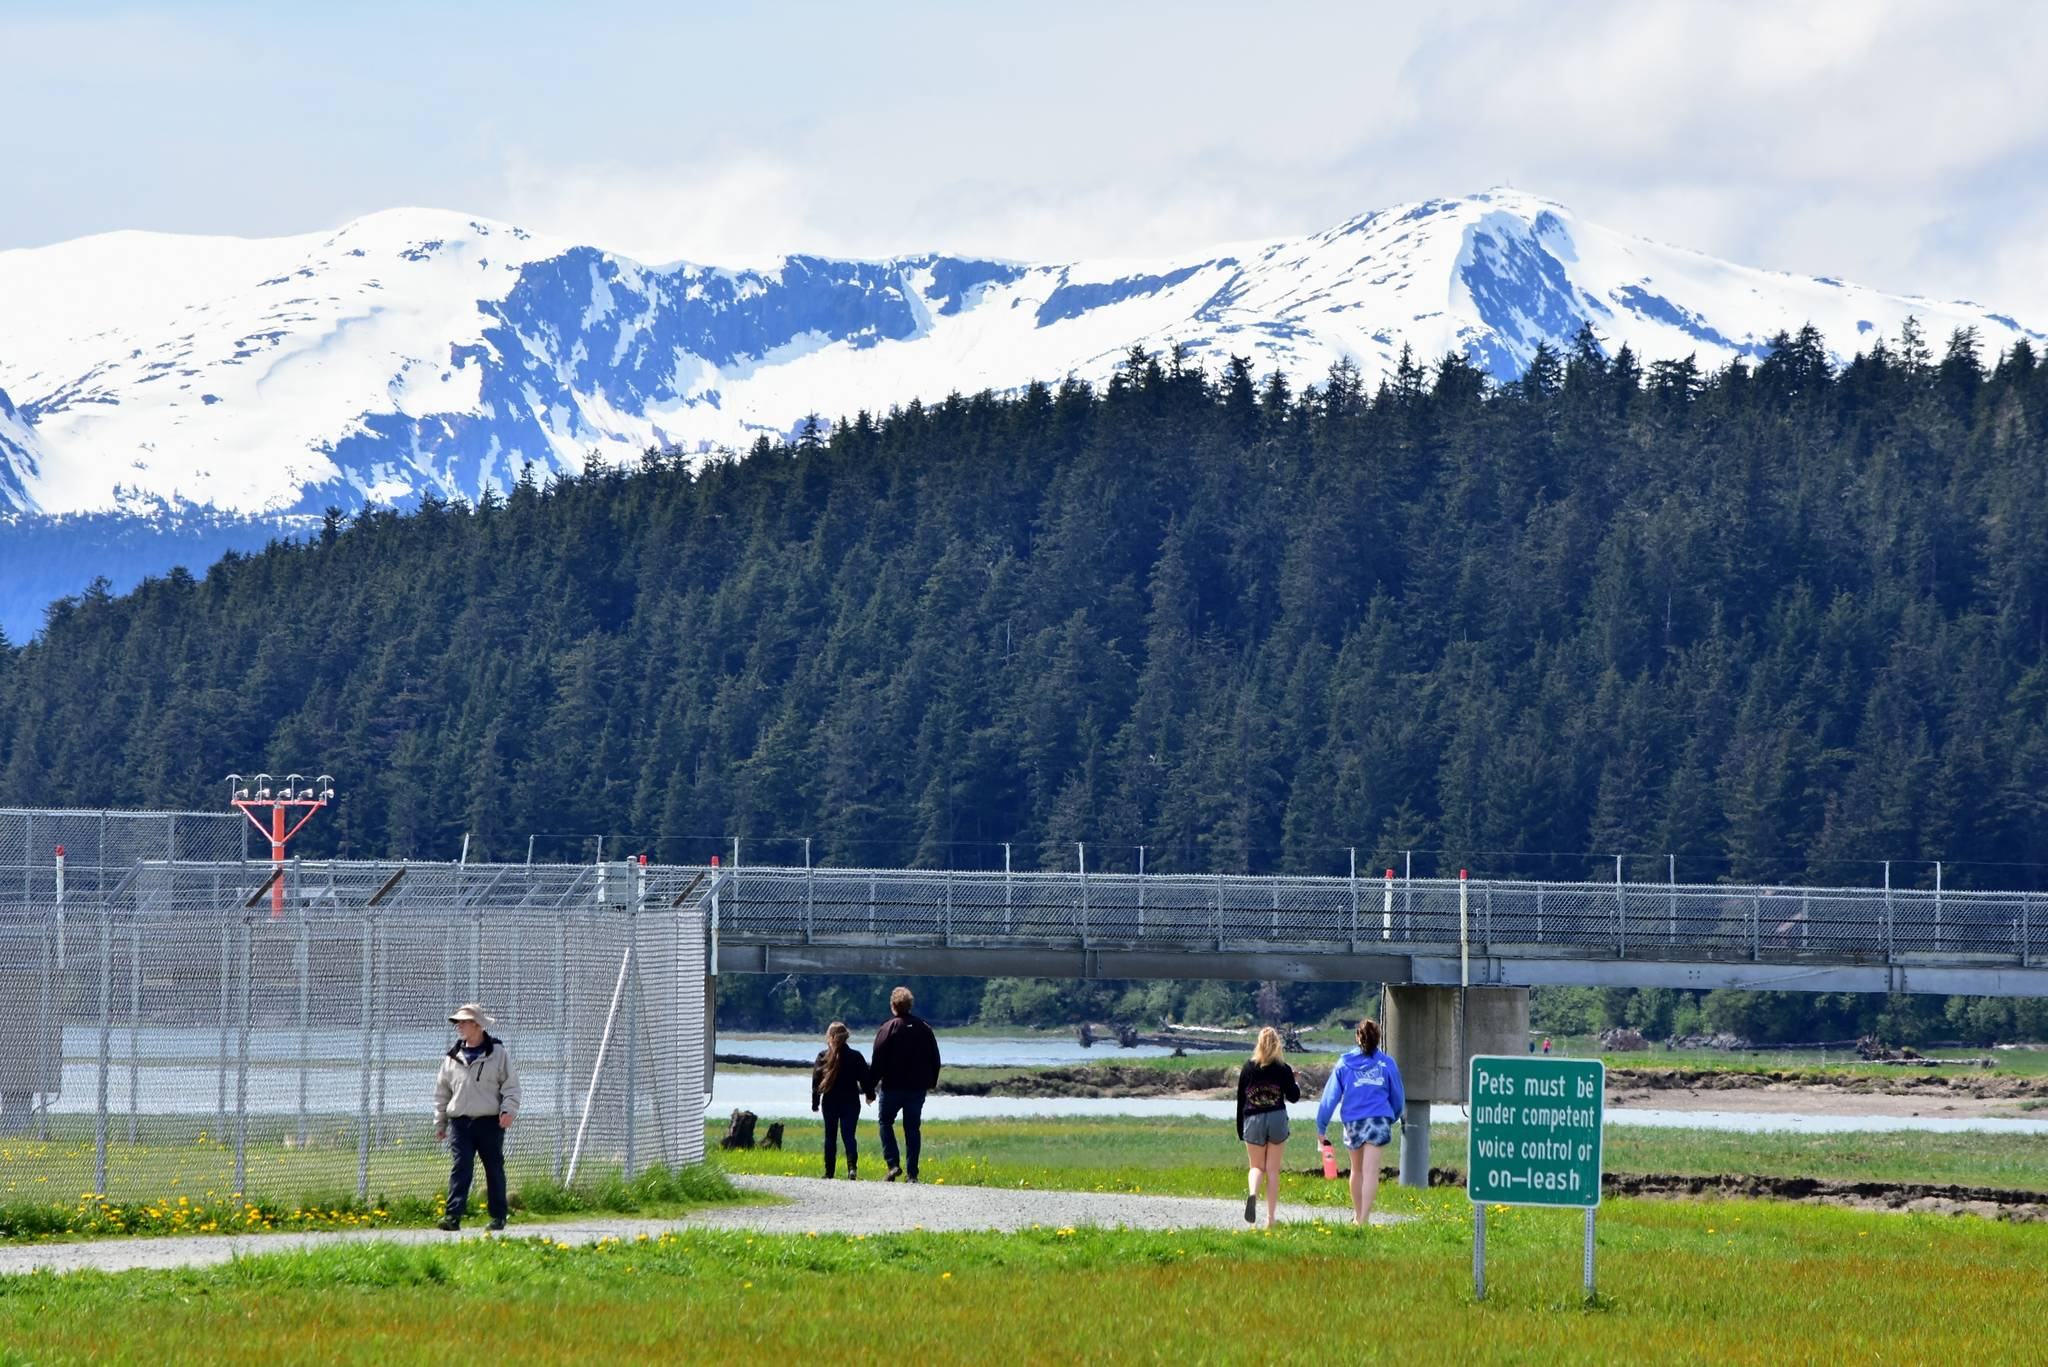 Juneauites walking the Airport Dike Trail, seen here on Tuesday, May 25, 2021, probably won't see the monitoring wells being installed in the area around the Juneau International Airport to test for contamination from  per- and polyfluoroalkyl substances, commonly known as PFAS chemicals. Ground water testing is set to take place over the next few years. (Peter Segall / Juneau Empire)